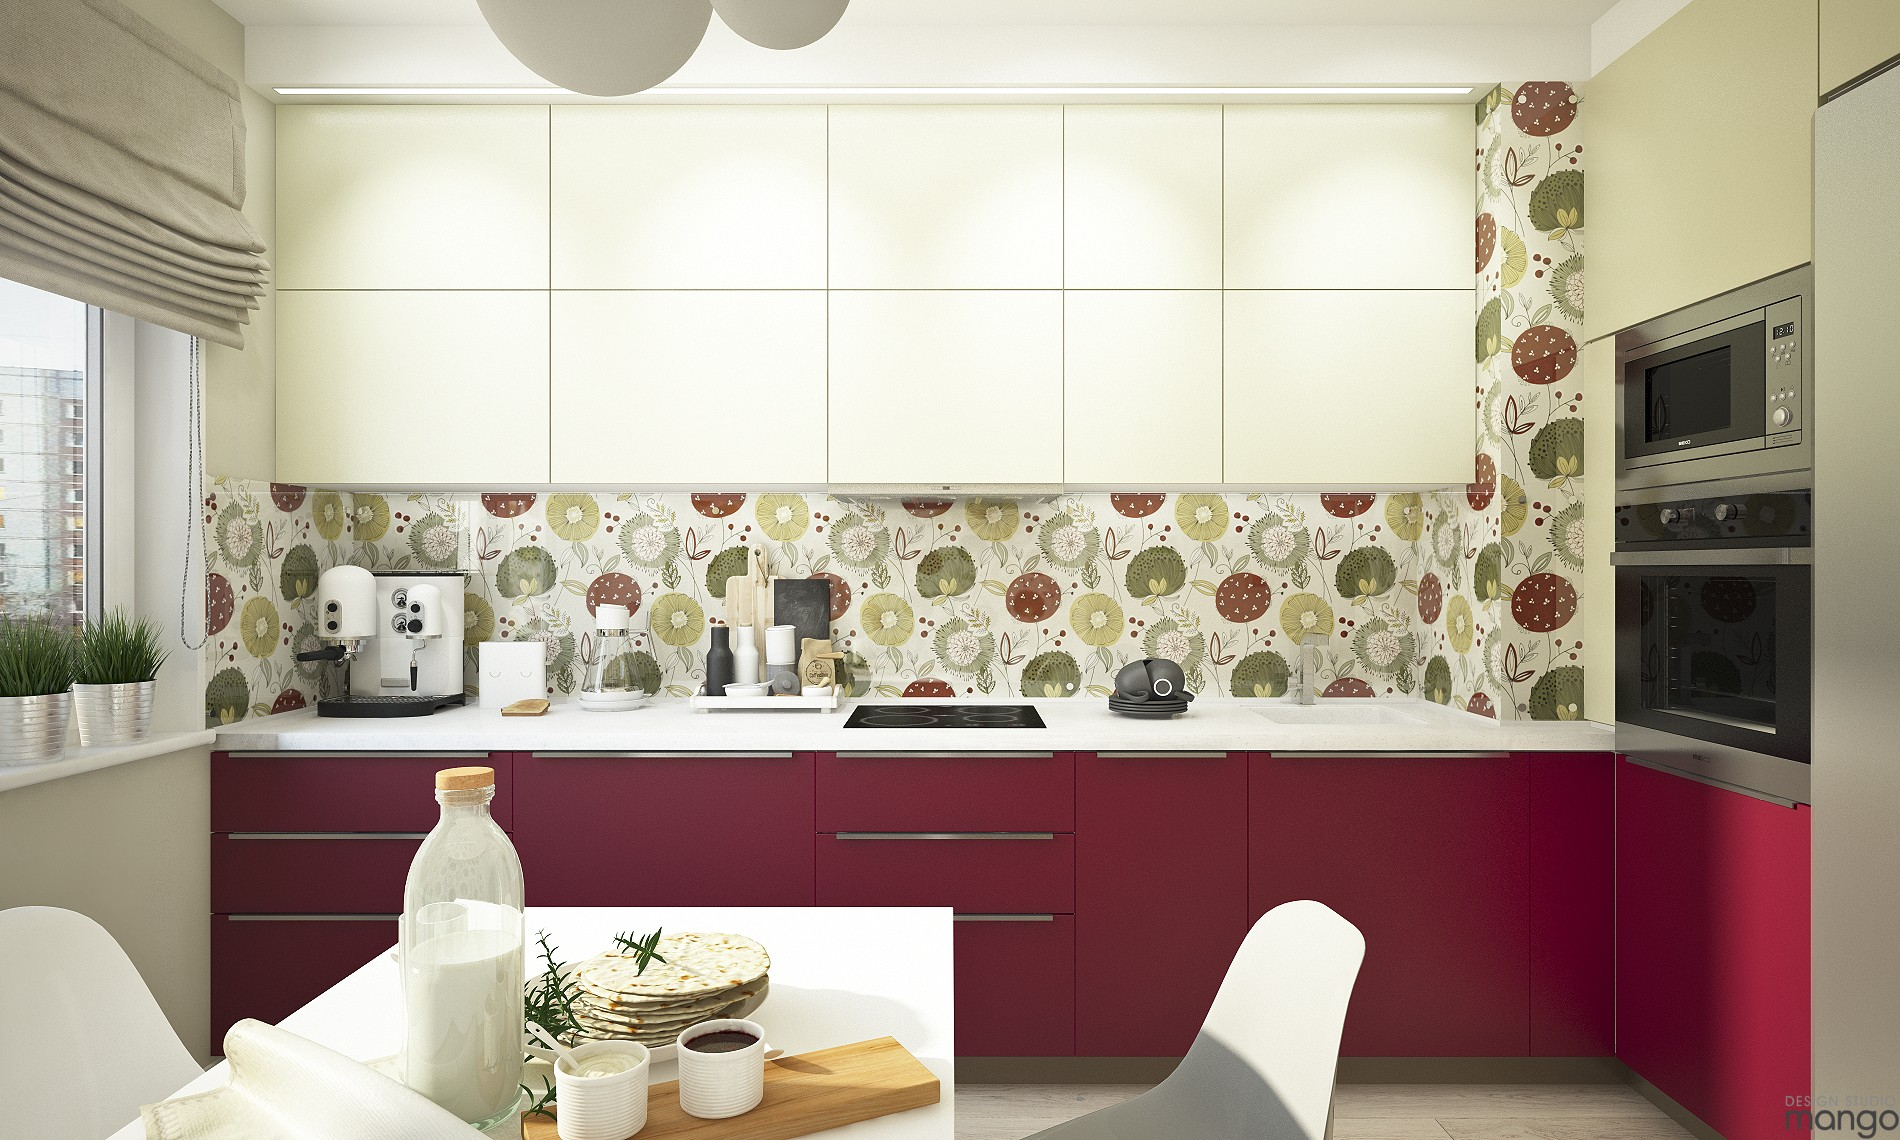 floral kitchen backsplash design